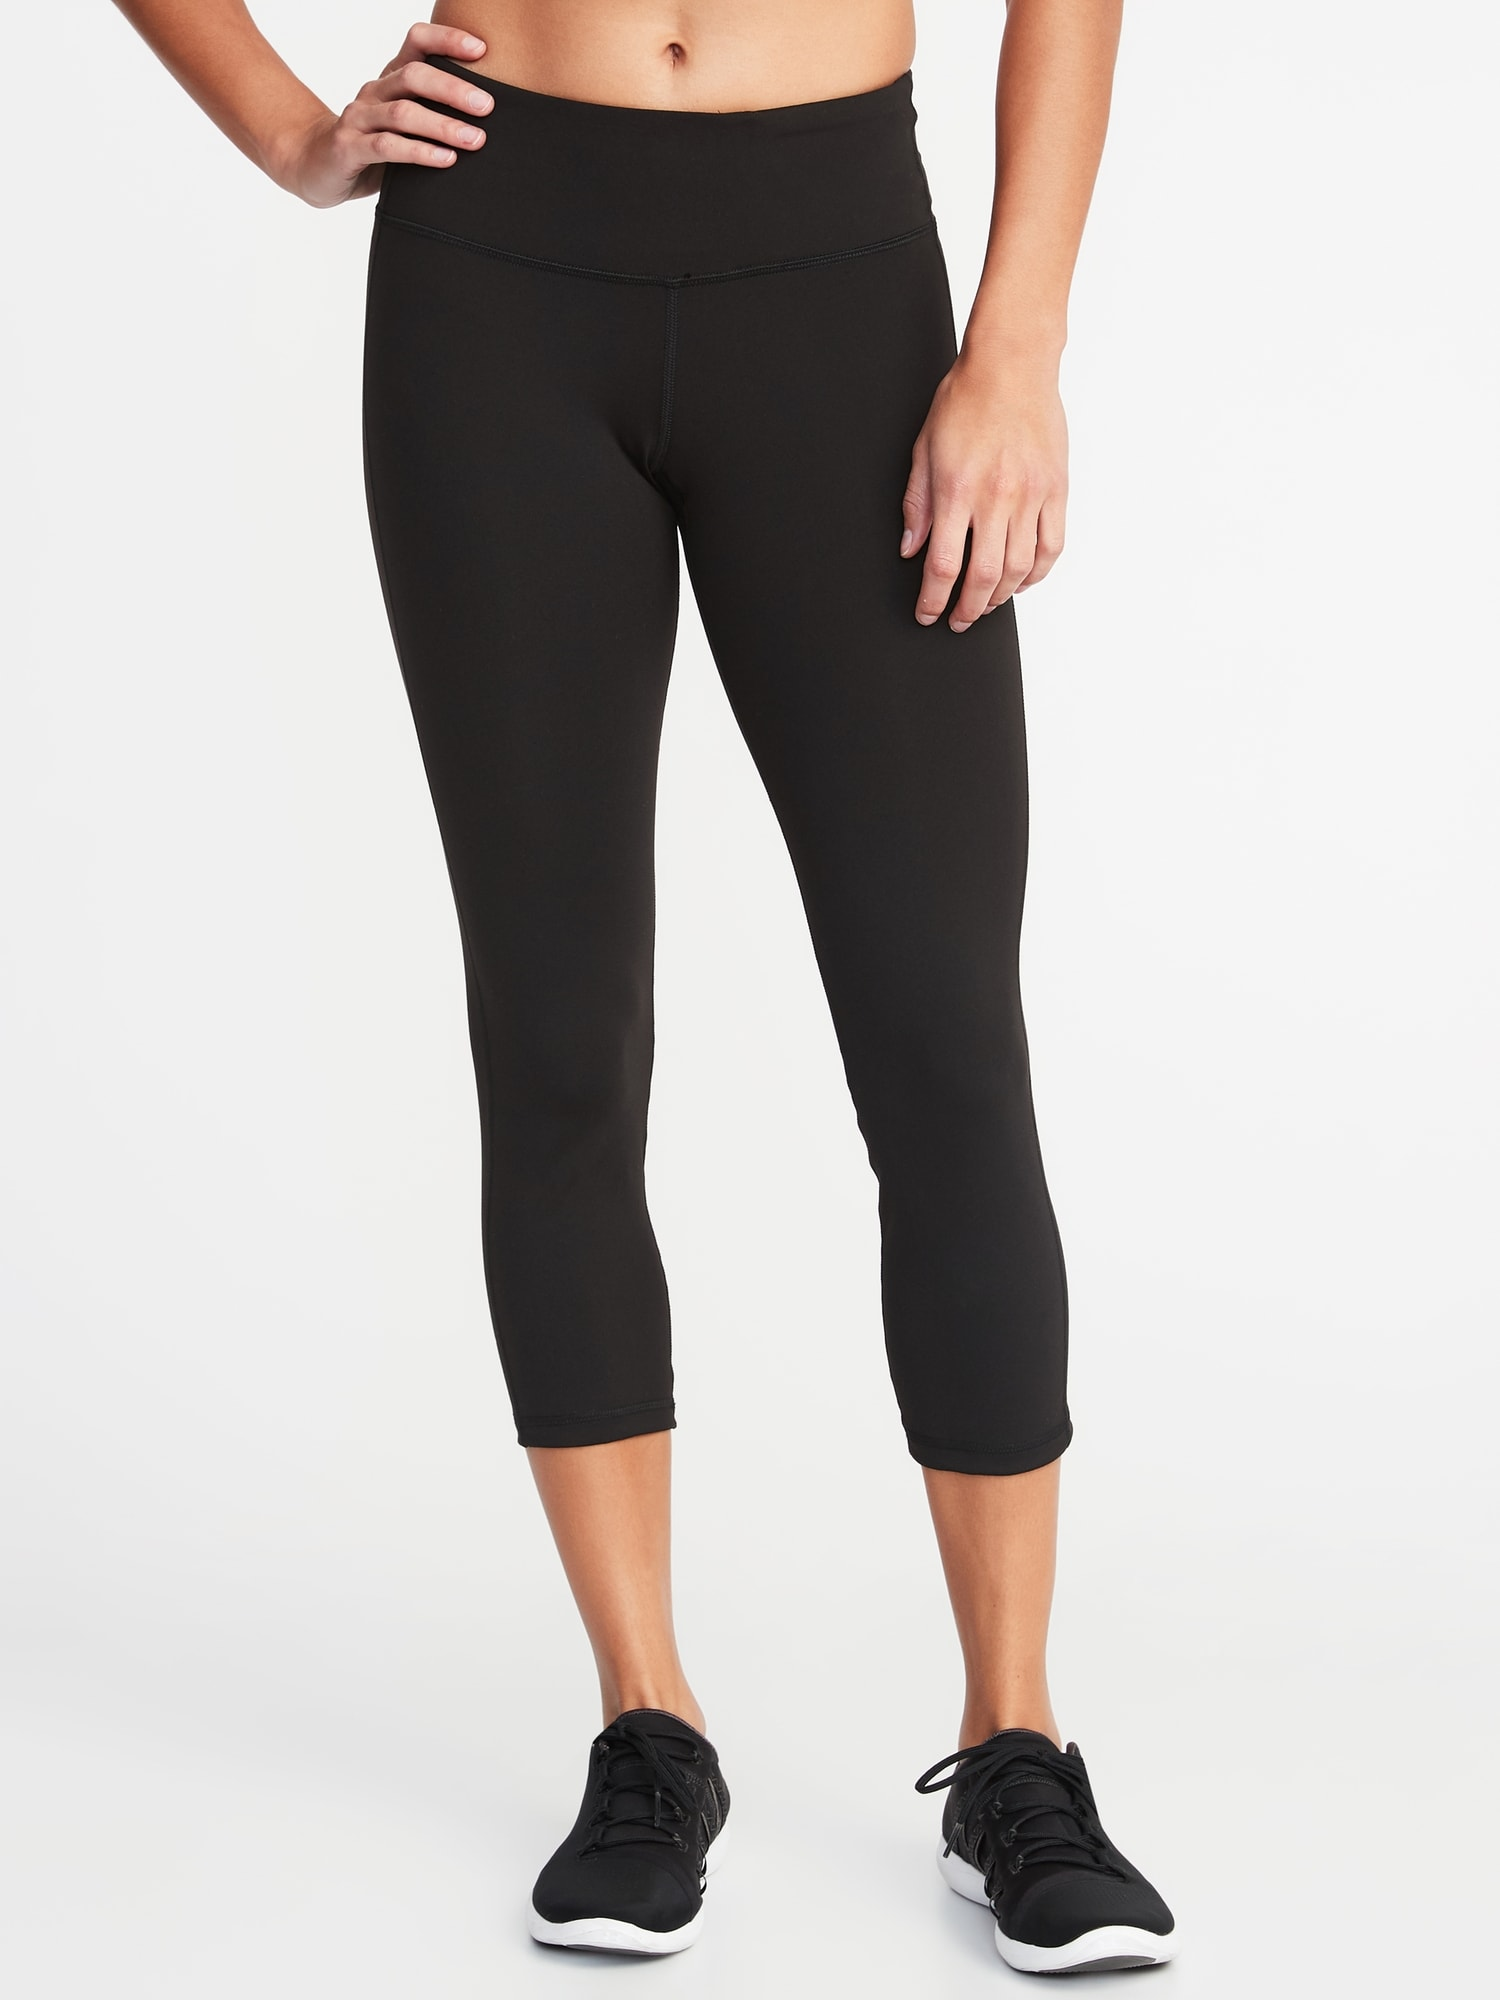 Mid Rise Elevate Compression Crops For Women Old Navy